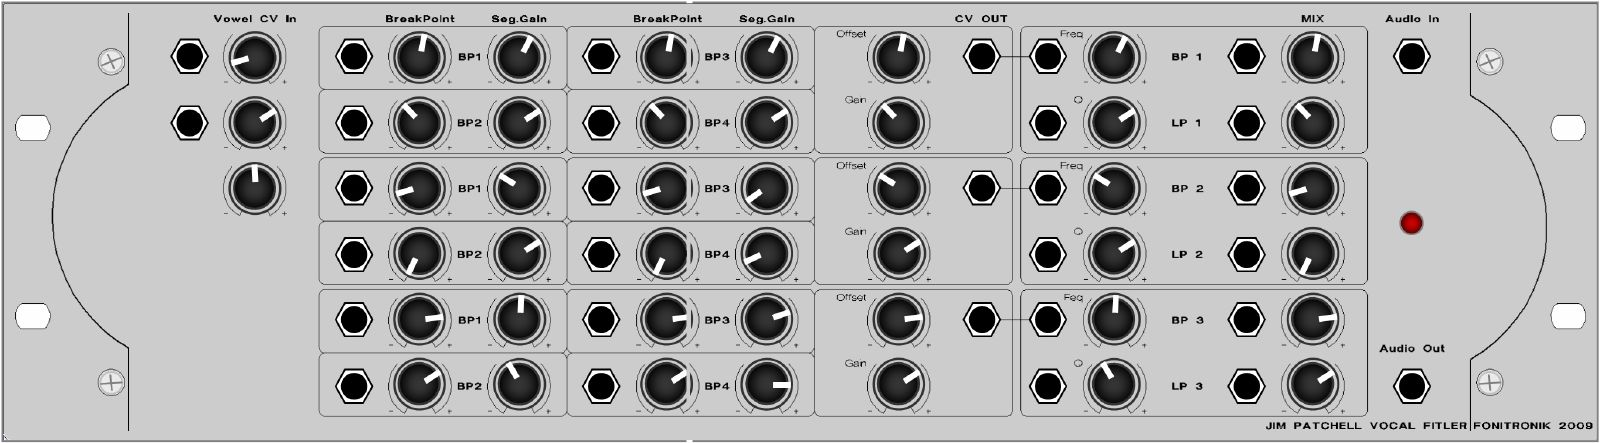 VocalFilter_panel